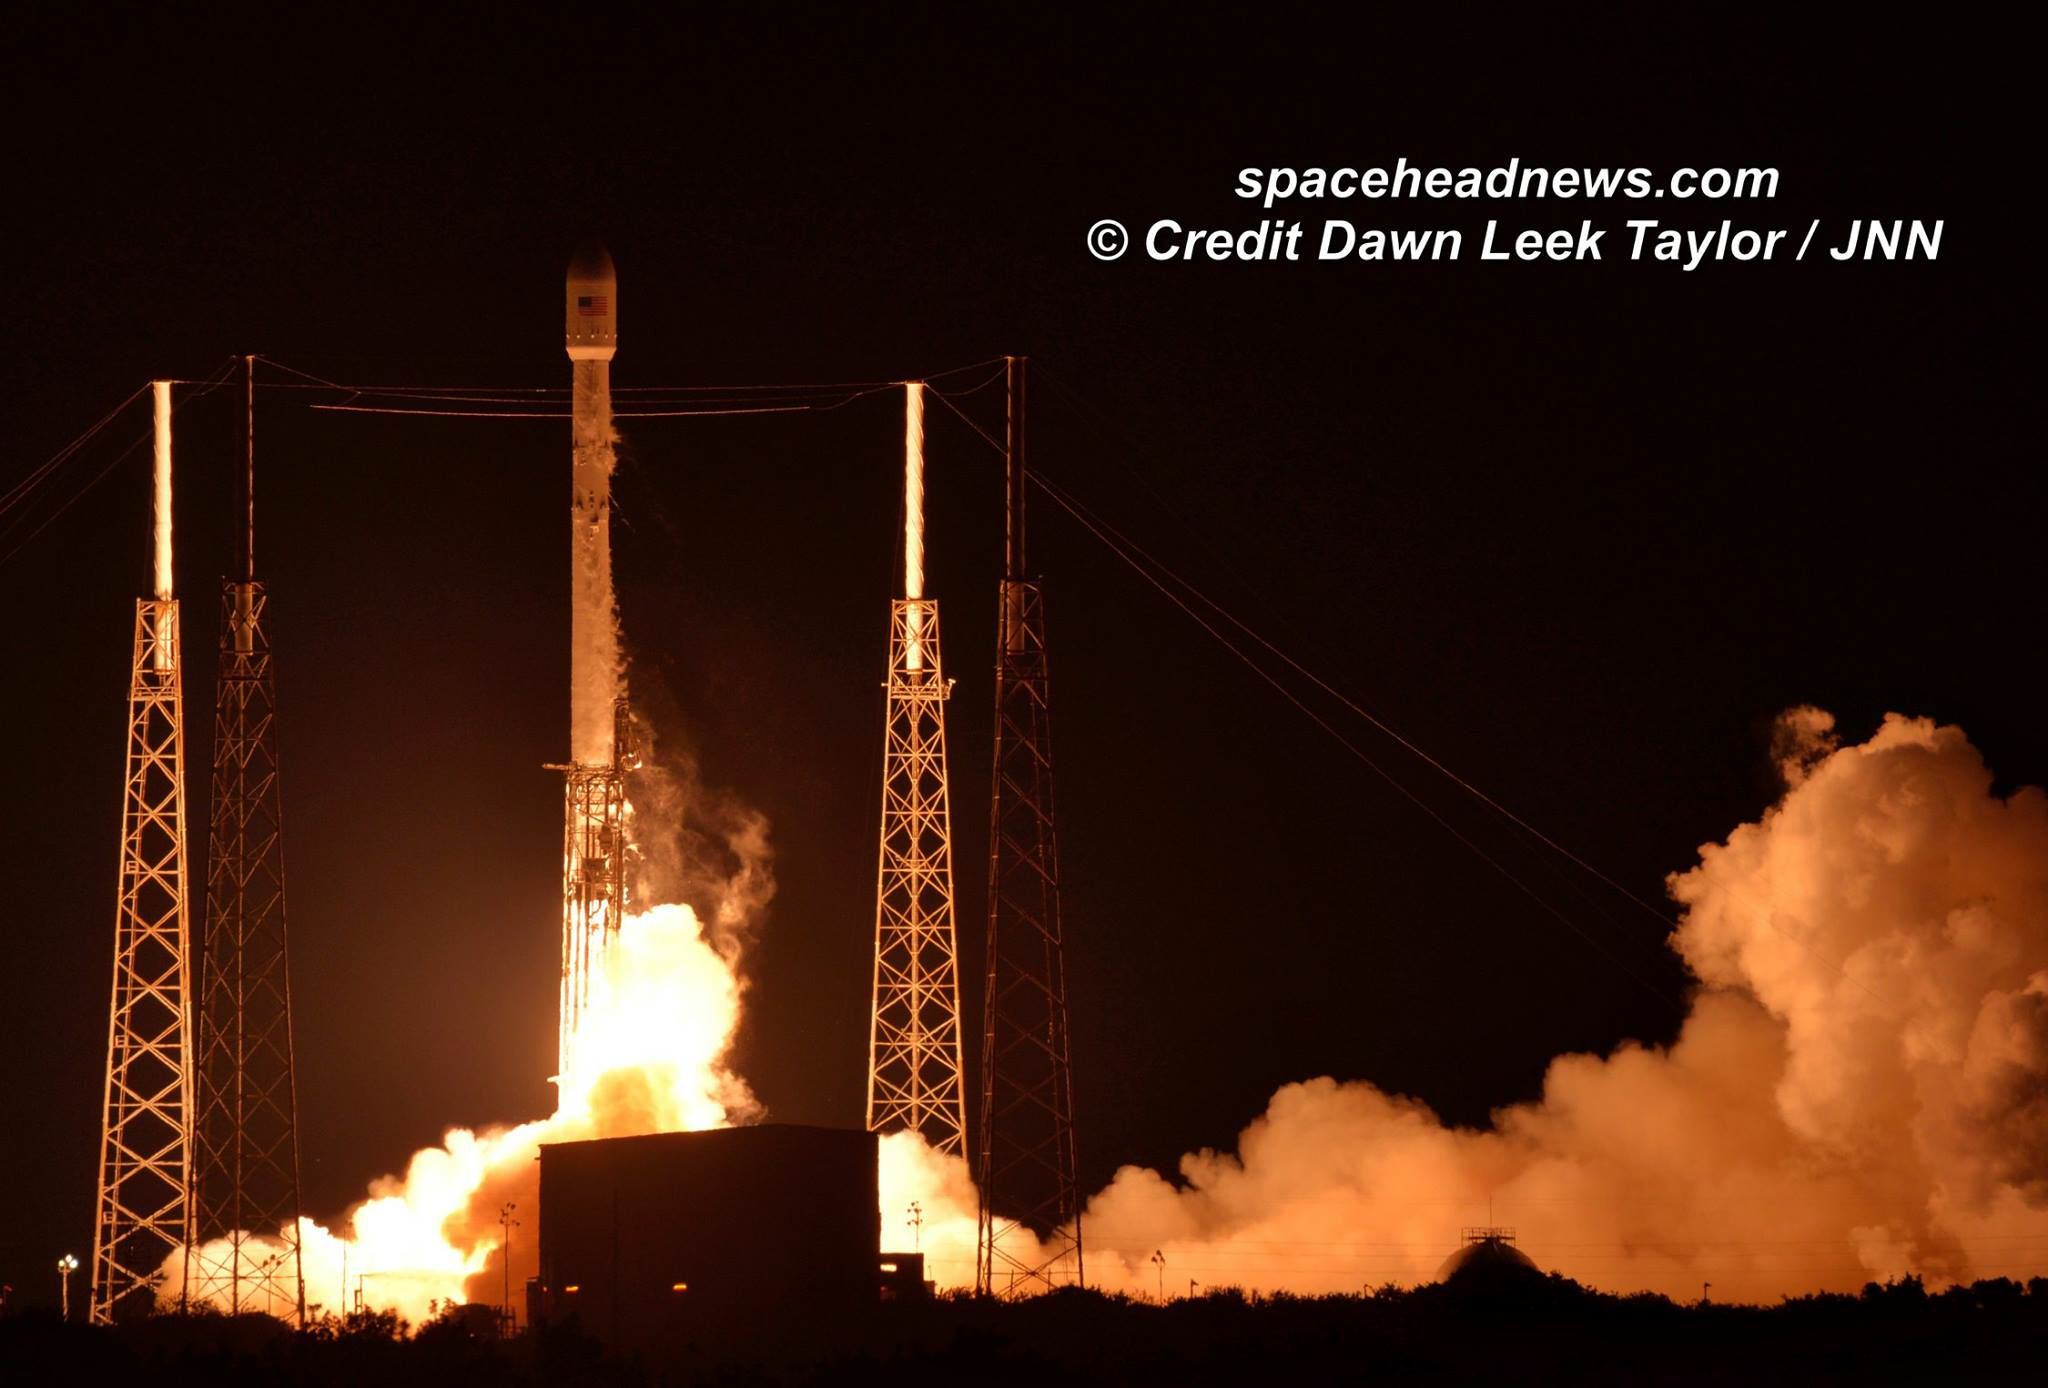 Launch of SpaceX Falcon 9 carrying JCSAT-14 Japanese communications satellite to orbit on May 6, 2016 at 1:21 a.m. EDT from Space Launch Complex 40 at Cape Canaveral Air Force Station, Fl.  Credit: Dawn Leek Taylor